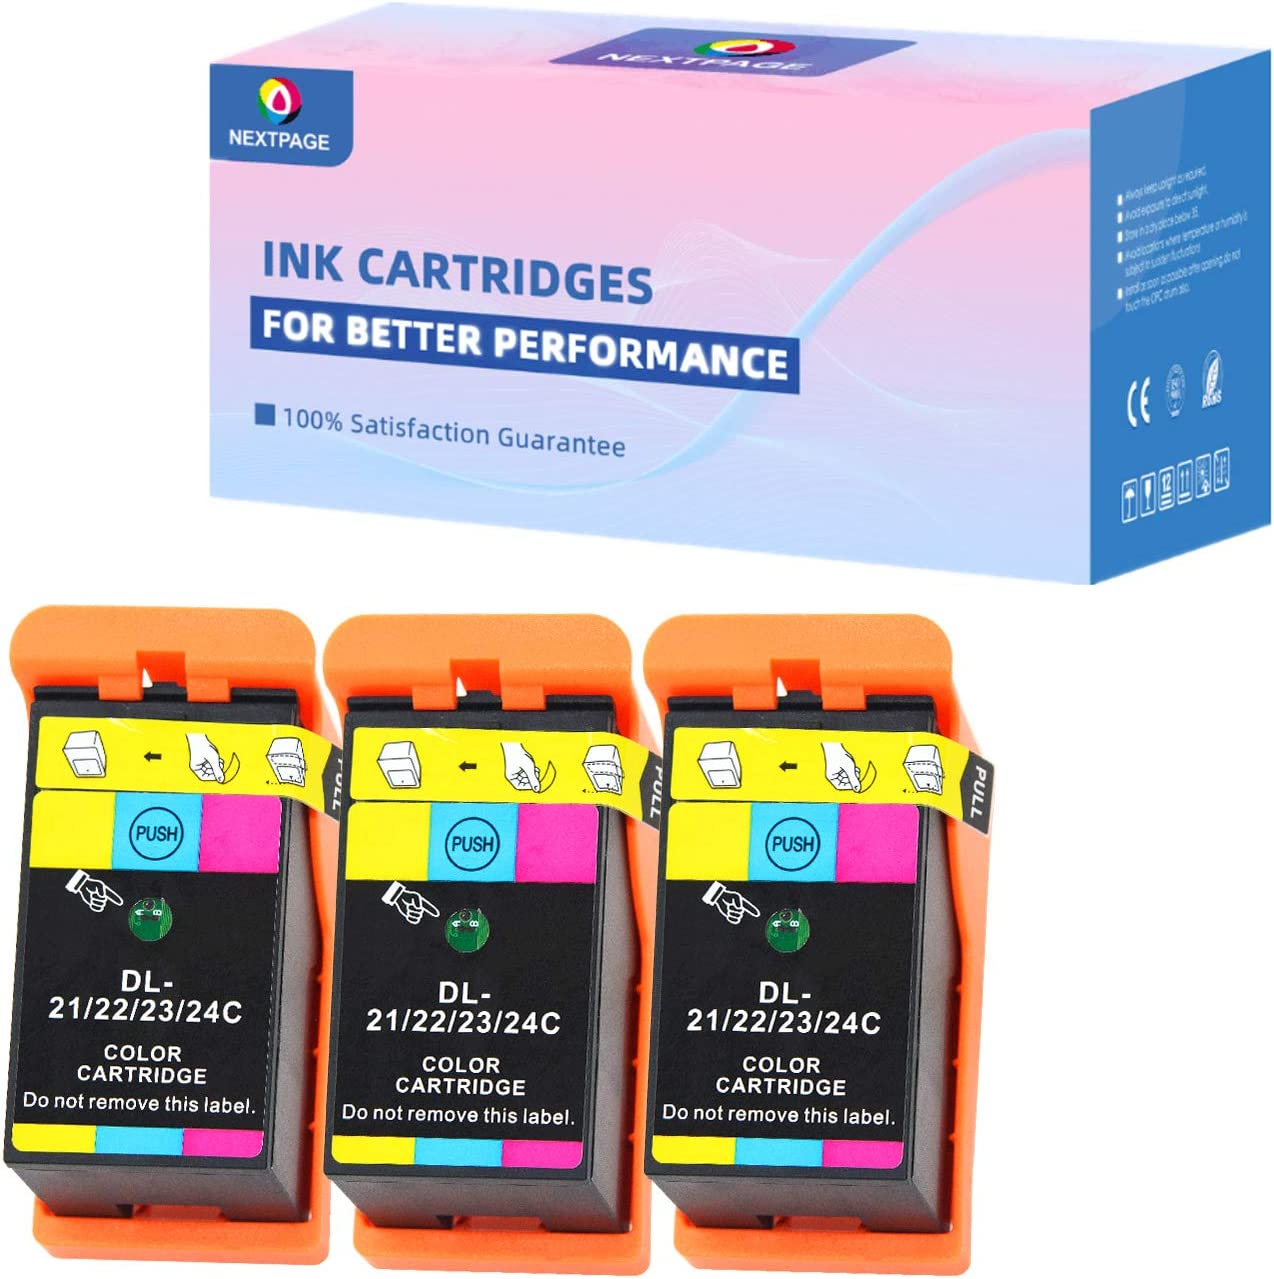 NEXTPAGE Compatible Dell Series 21, Series 22, Series 23, Series 24 Color Ink Cartridges Compatible for Dell V313 V313W V515W P513W P713W V715W Printer, Dell Series 21 Color Ink 3 Pack